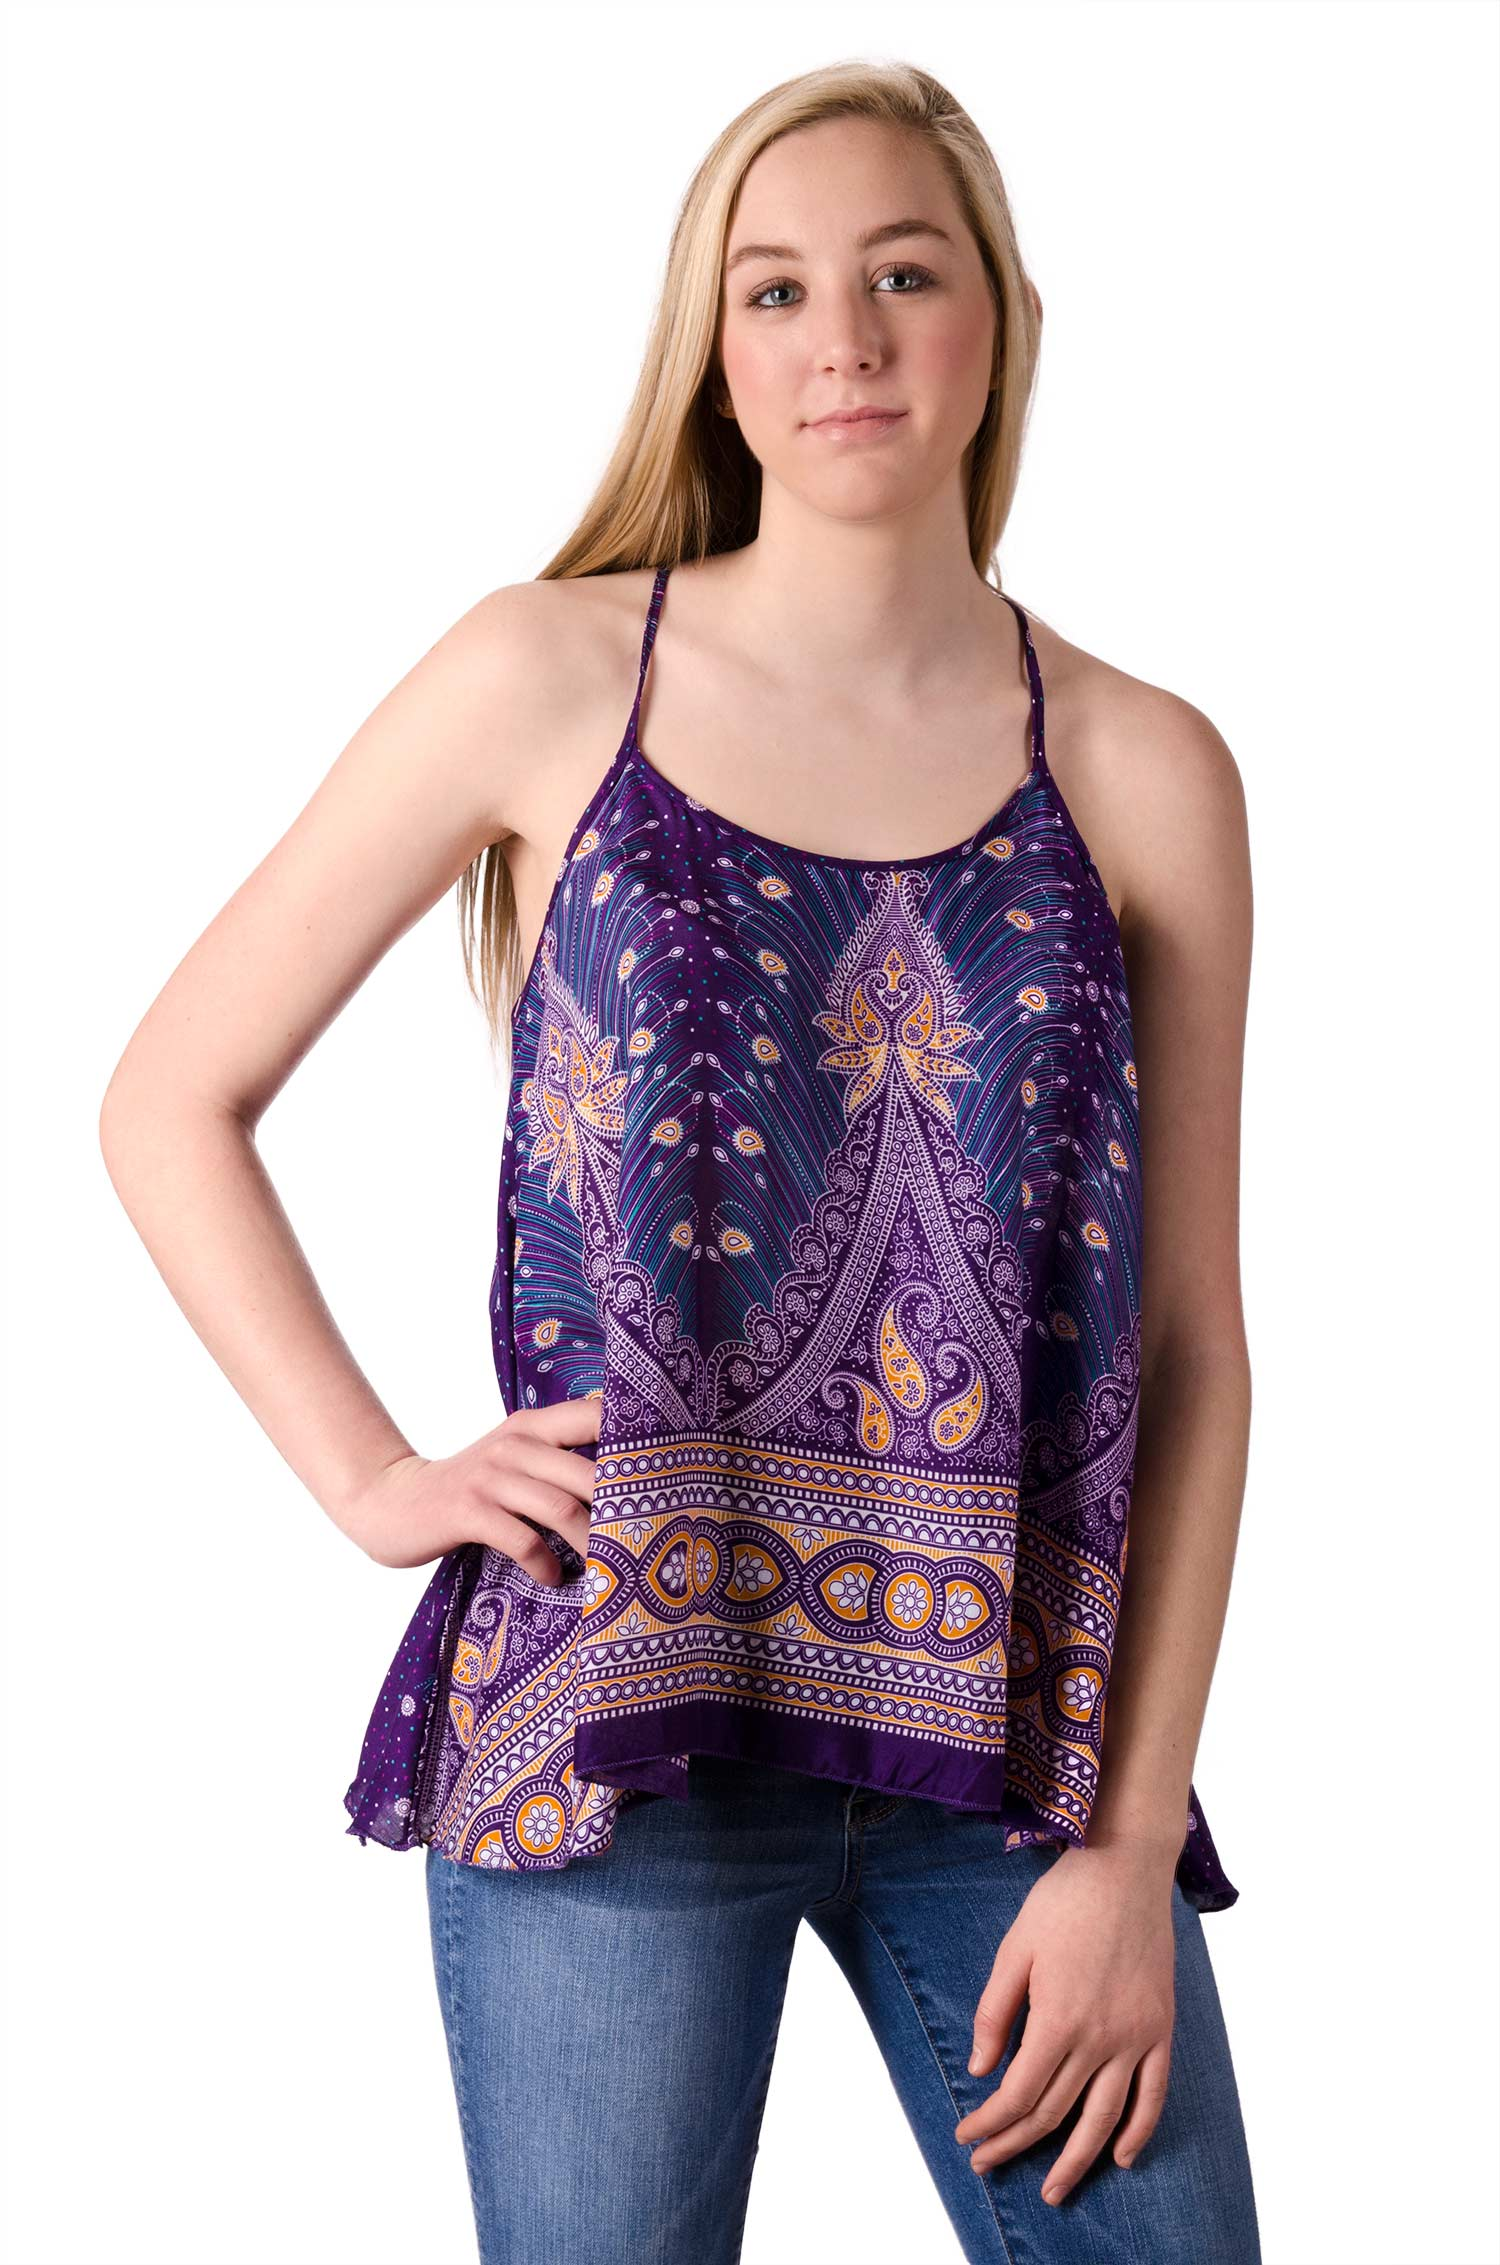 Peacock Print Cami Top - Purple Multi - 4484U